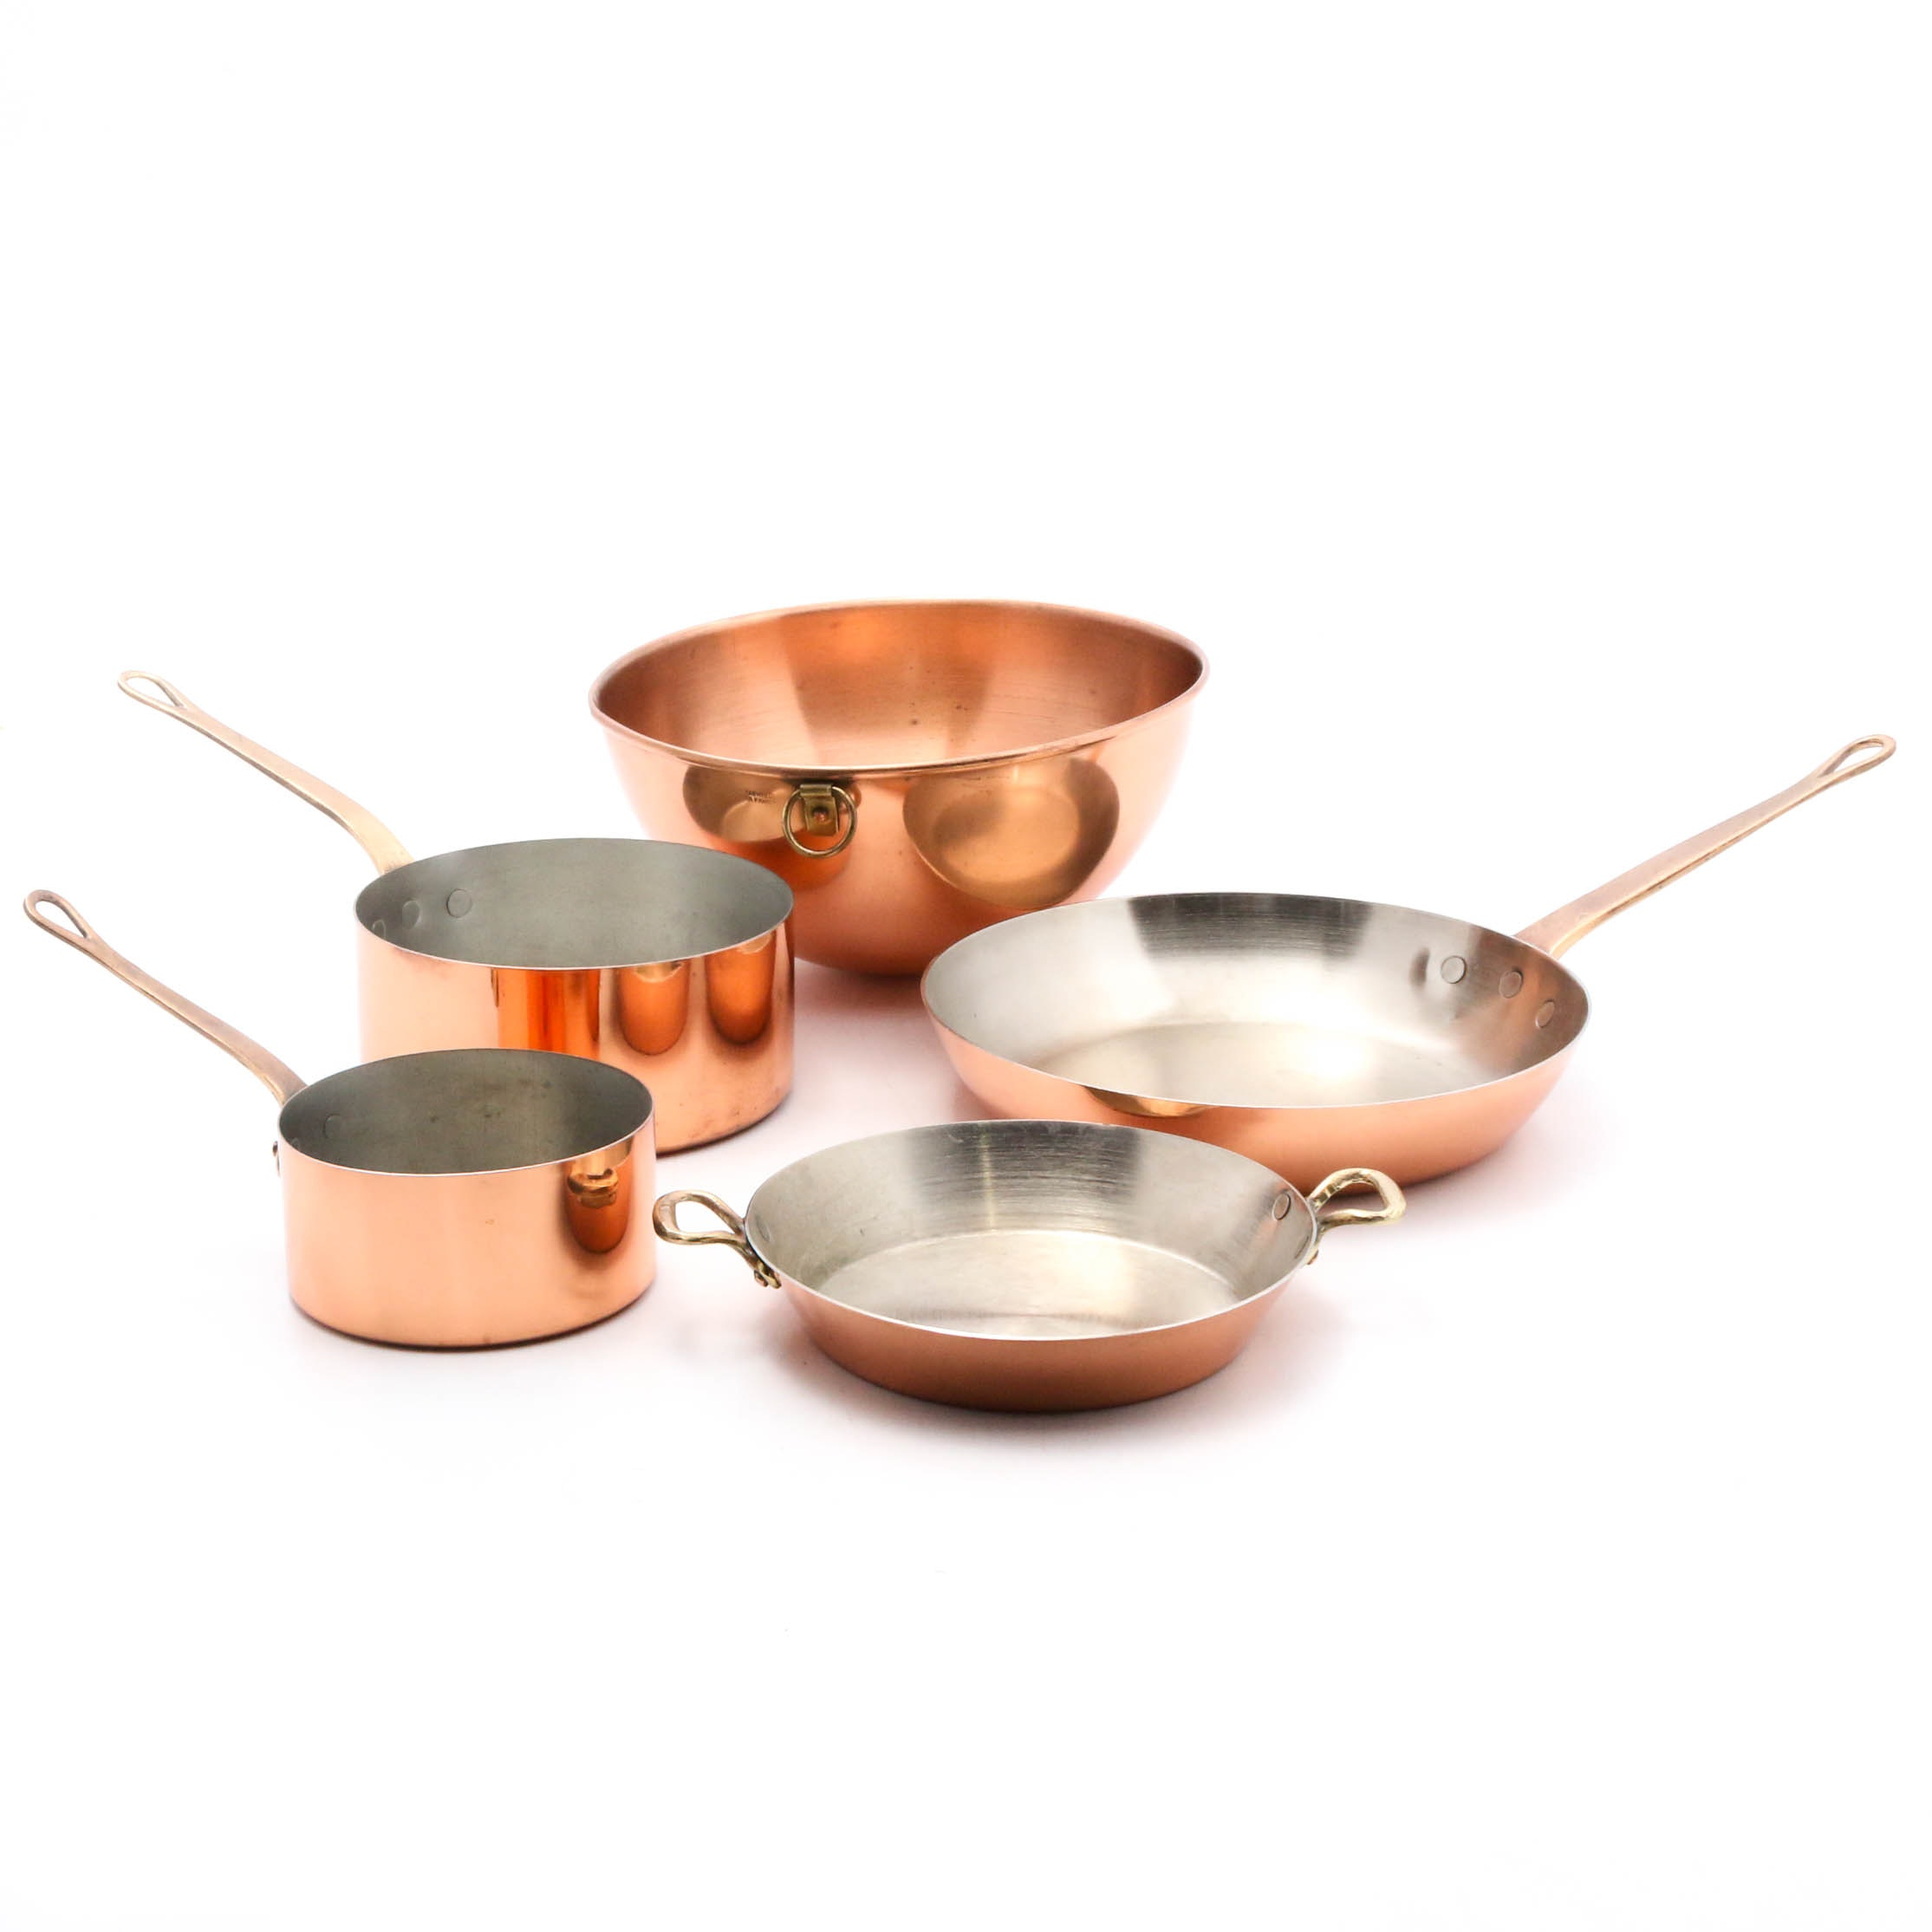 Metaux Ouvres-Vesoul Copper-Clad Cookware, Made in France